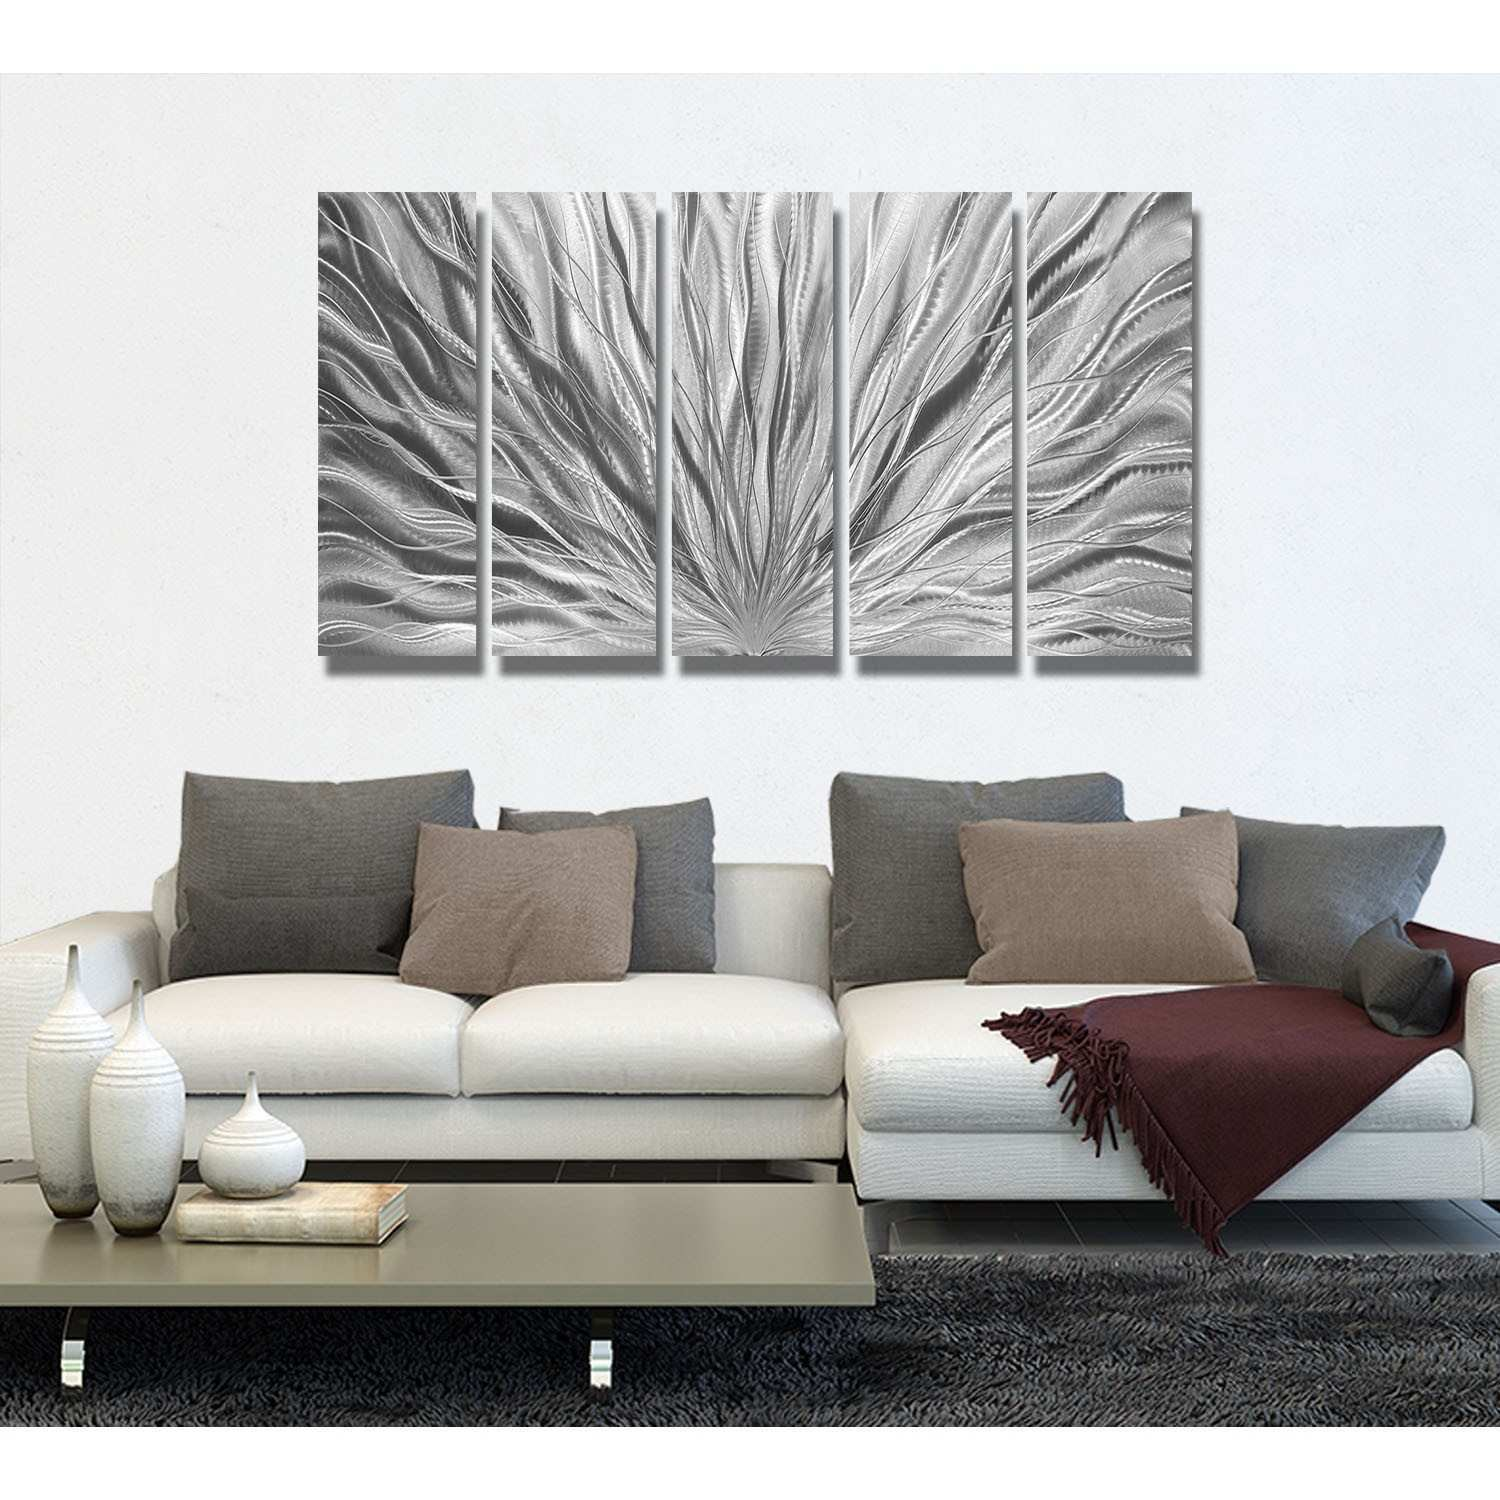 Amazing Metal Wall Art Wholesale Mold Wall Decoration Ideas